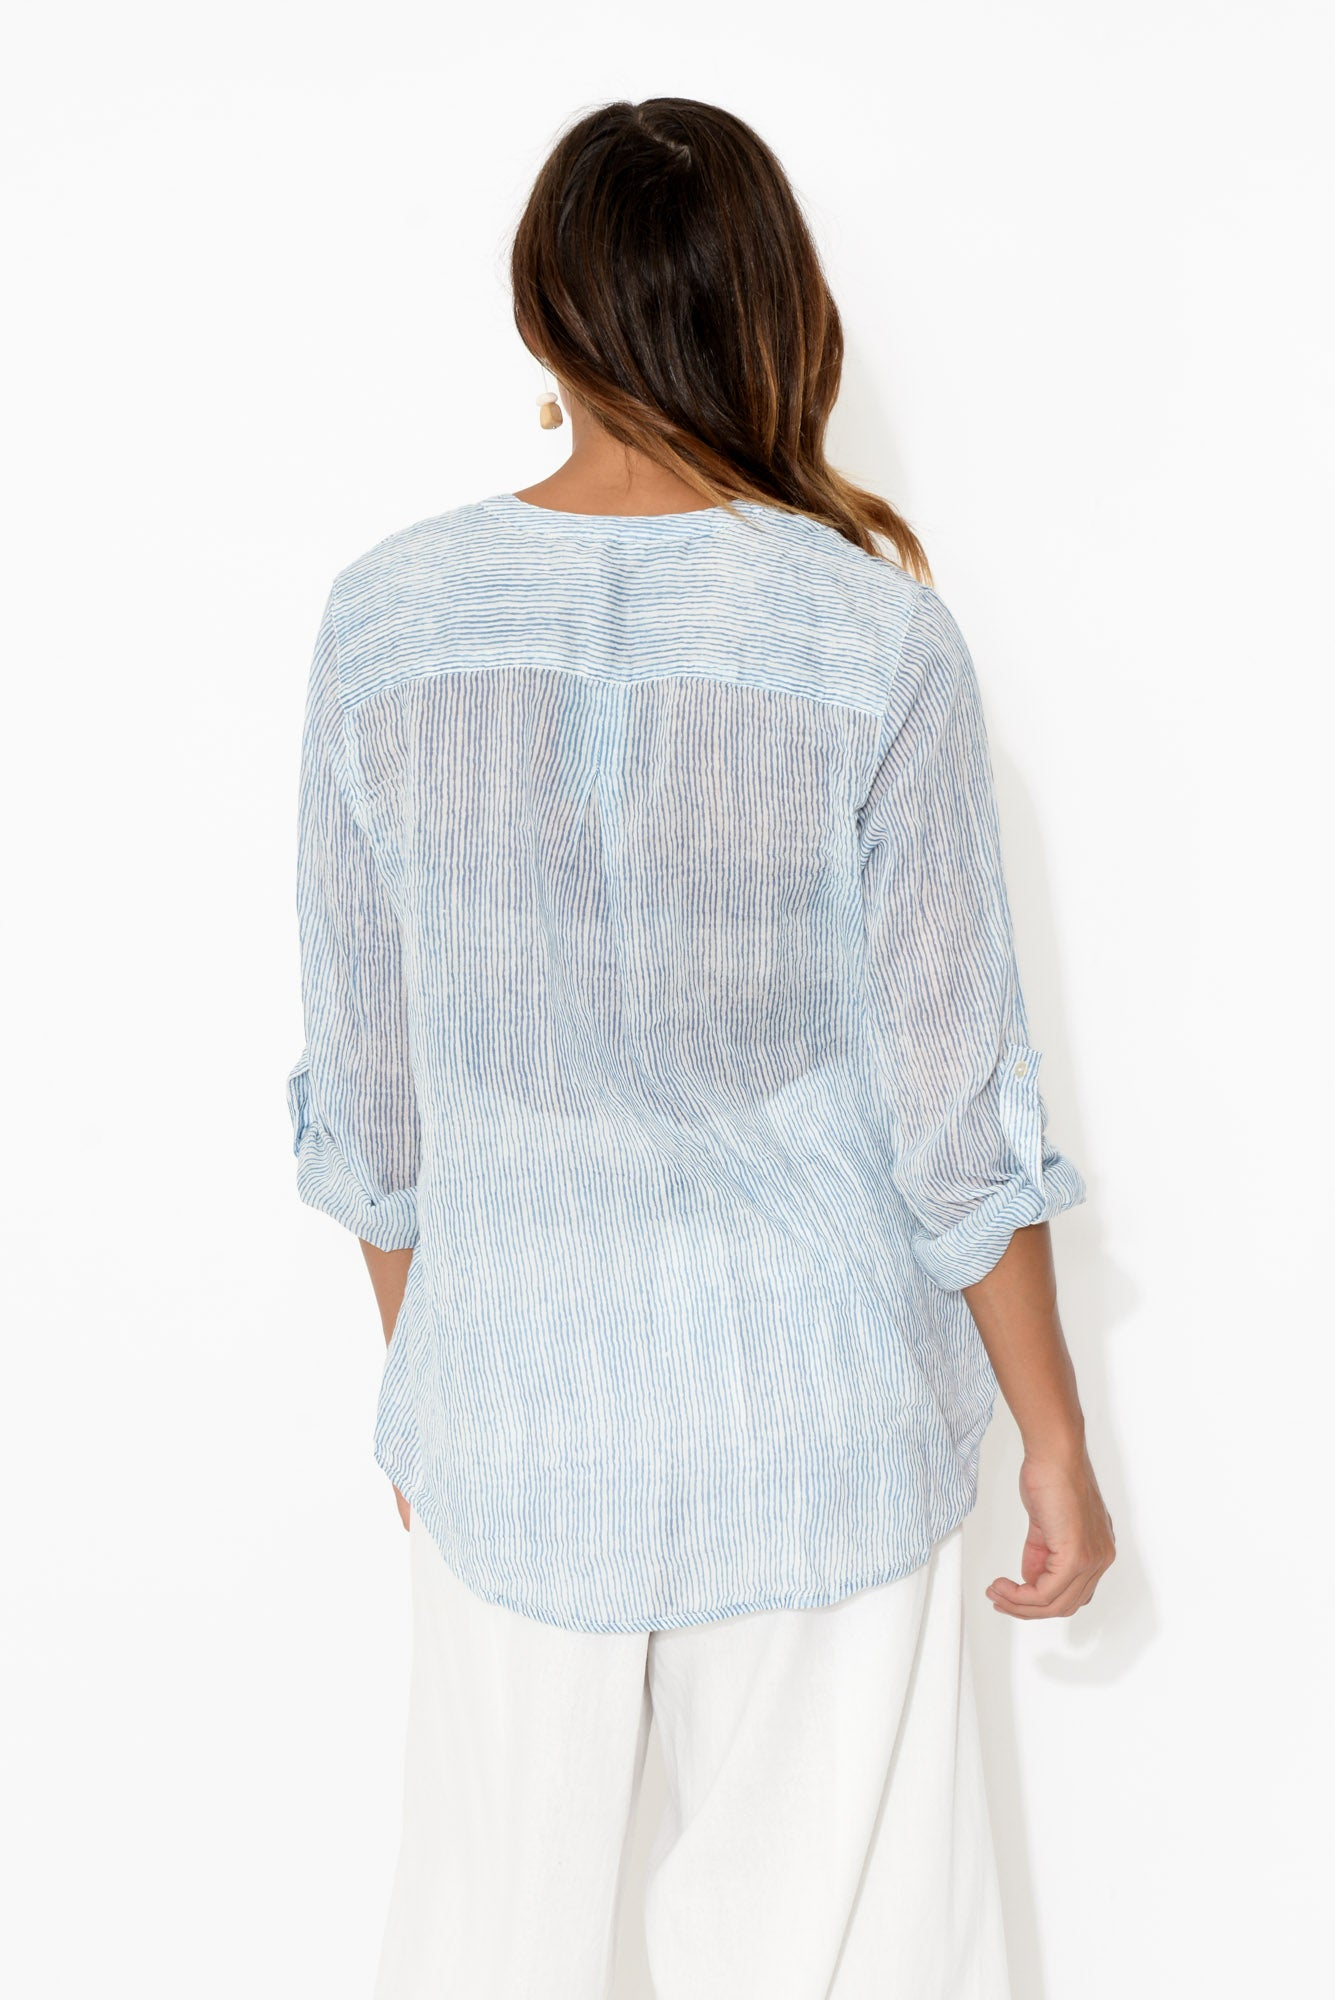 Caprice Blue Lines Cotton Shirt